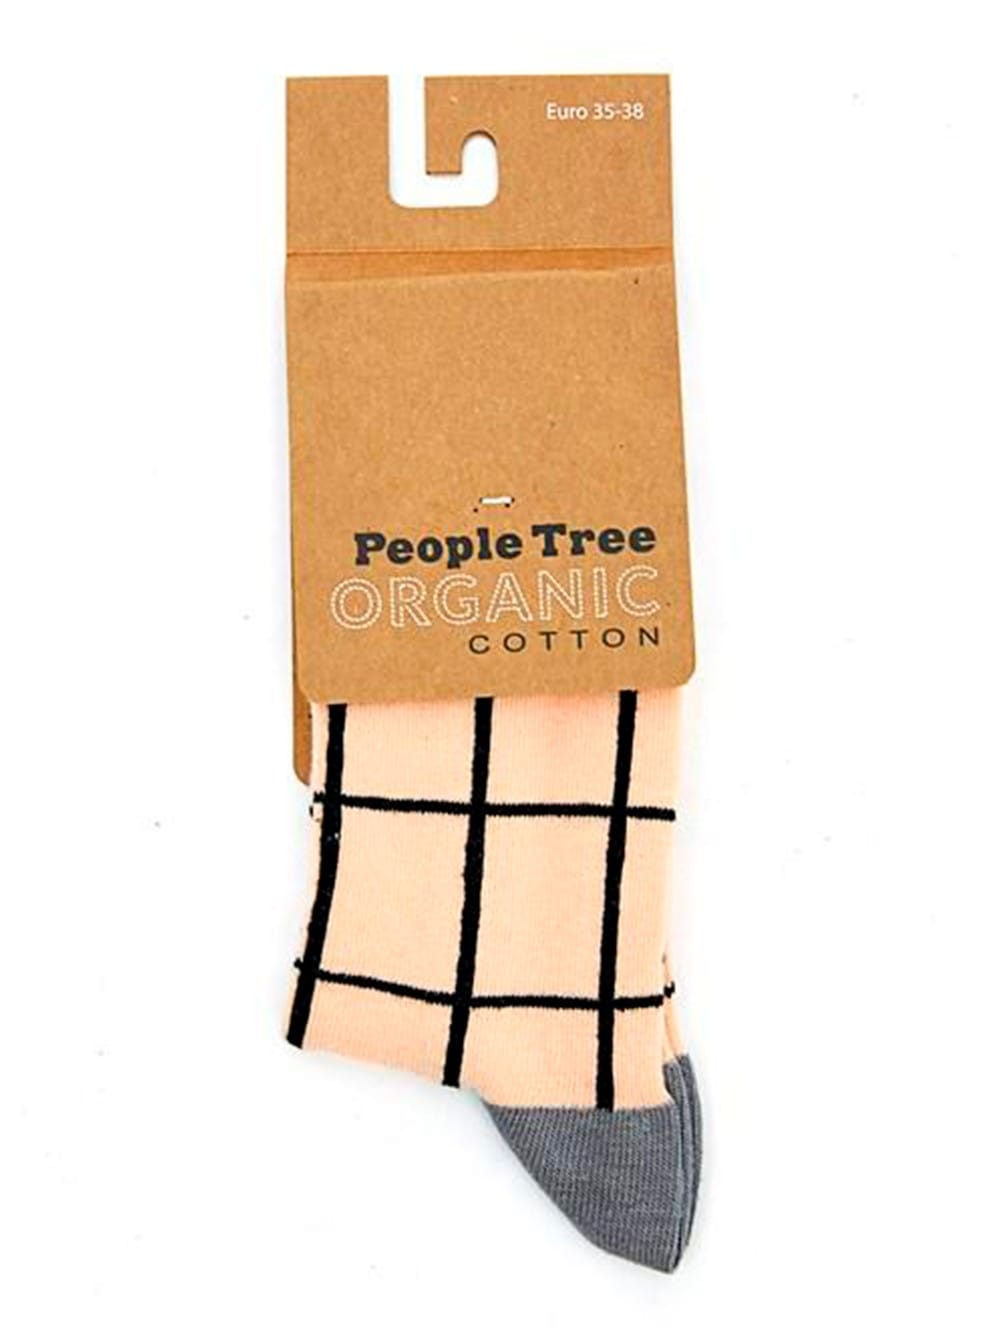 Organic cotton pink socks